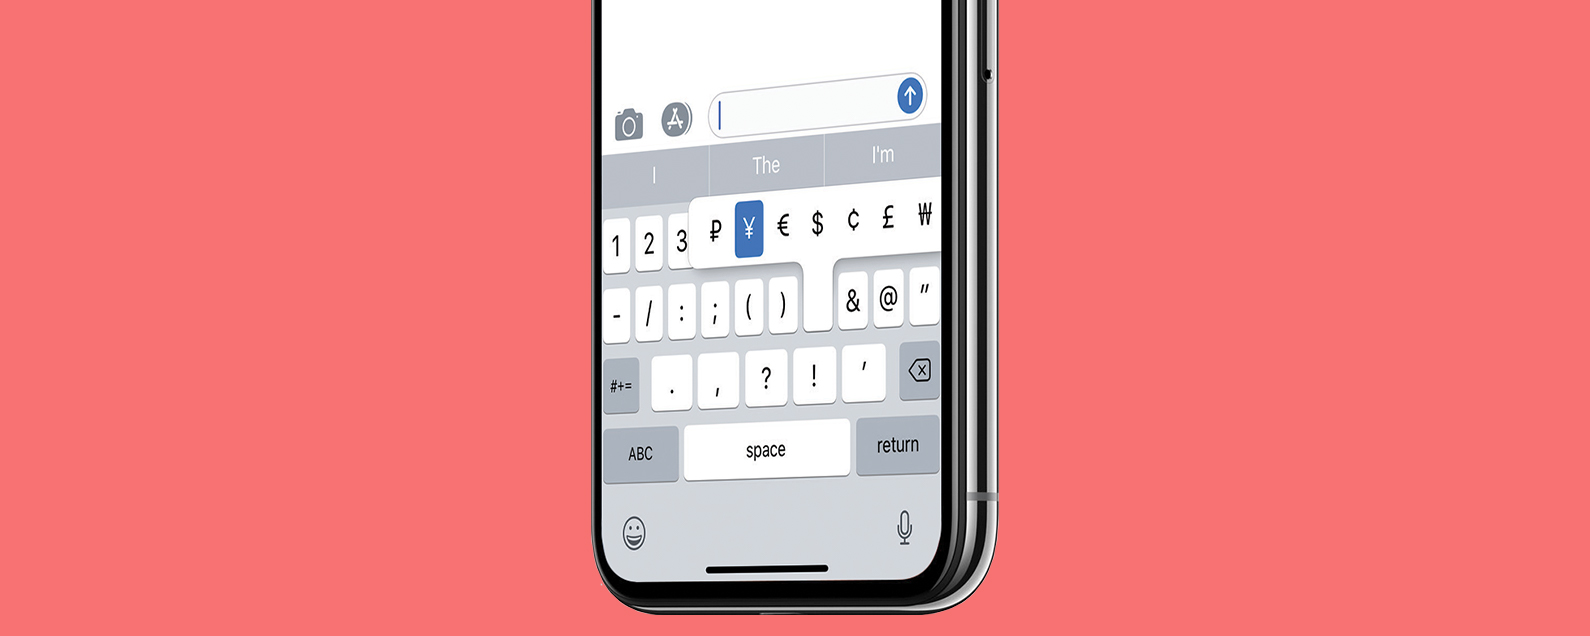 Currency symbols how to type the yen symbol on your iphone currency symbols how to type the yen symbol on your iphone iphonelife biocorpaavc Choice Image